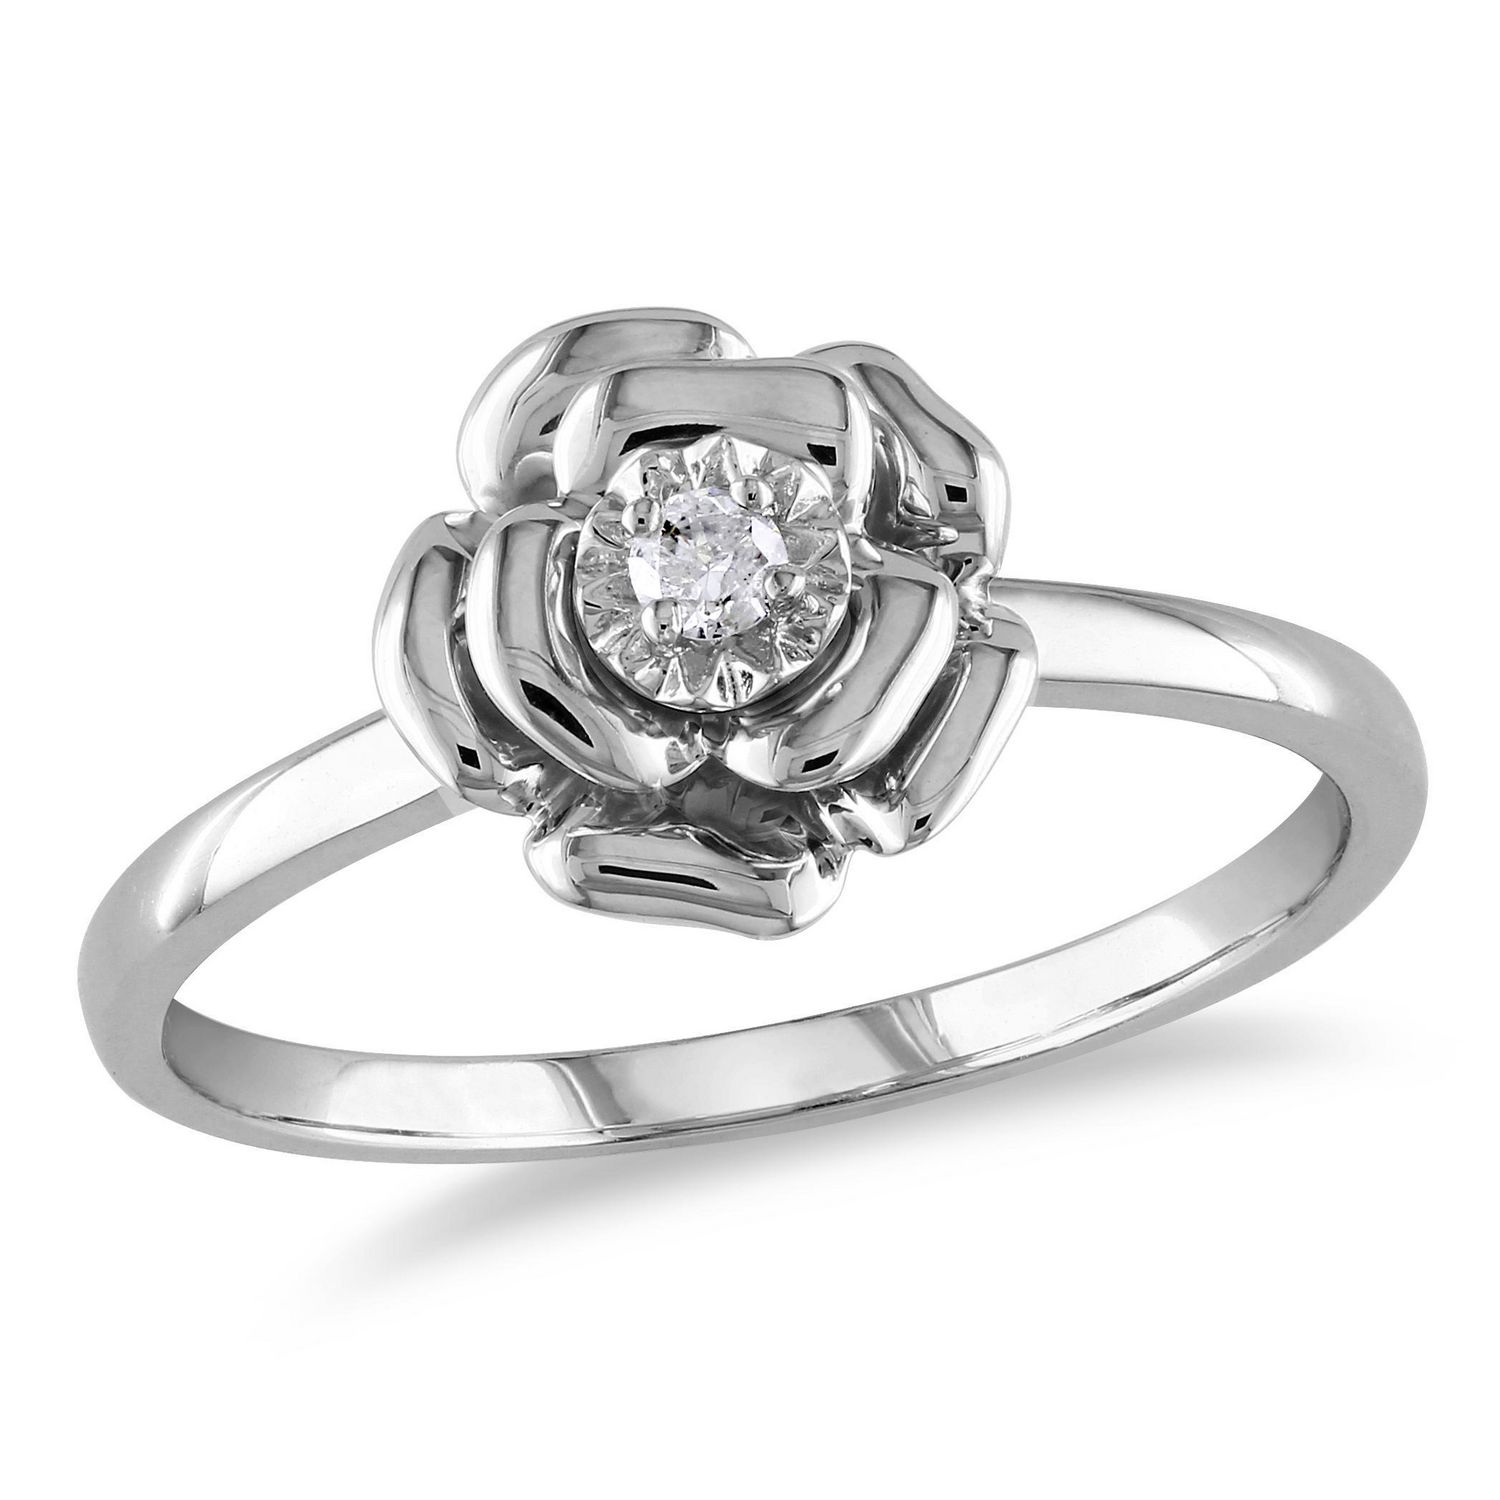 floral gold carat diamond canada ip with en gallery t rings engagement w walmart miabella heart k design white raised tw ring